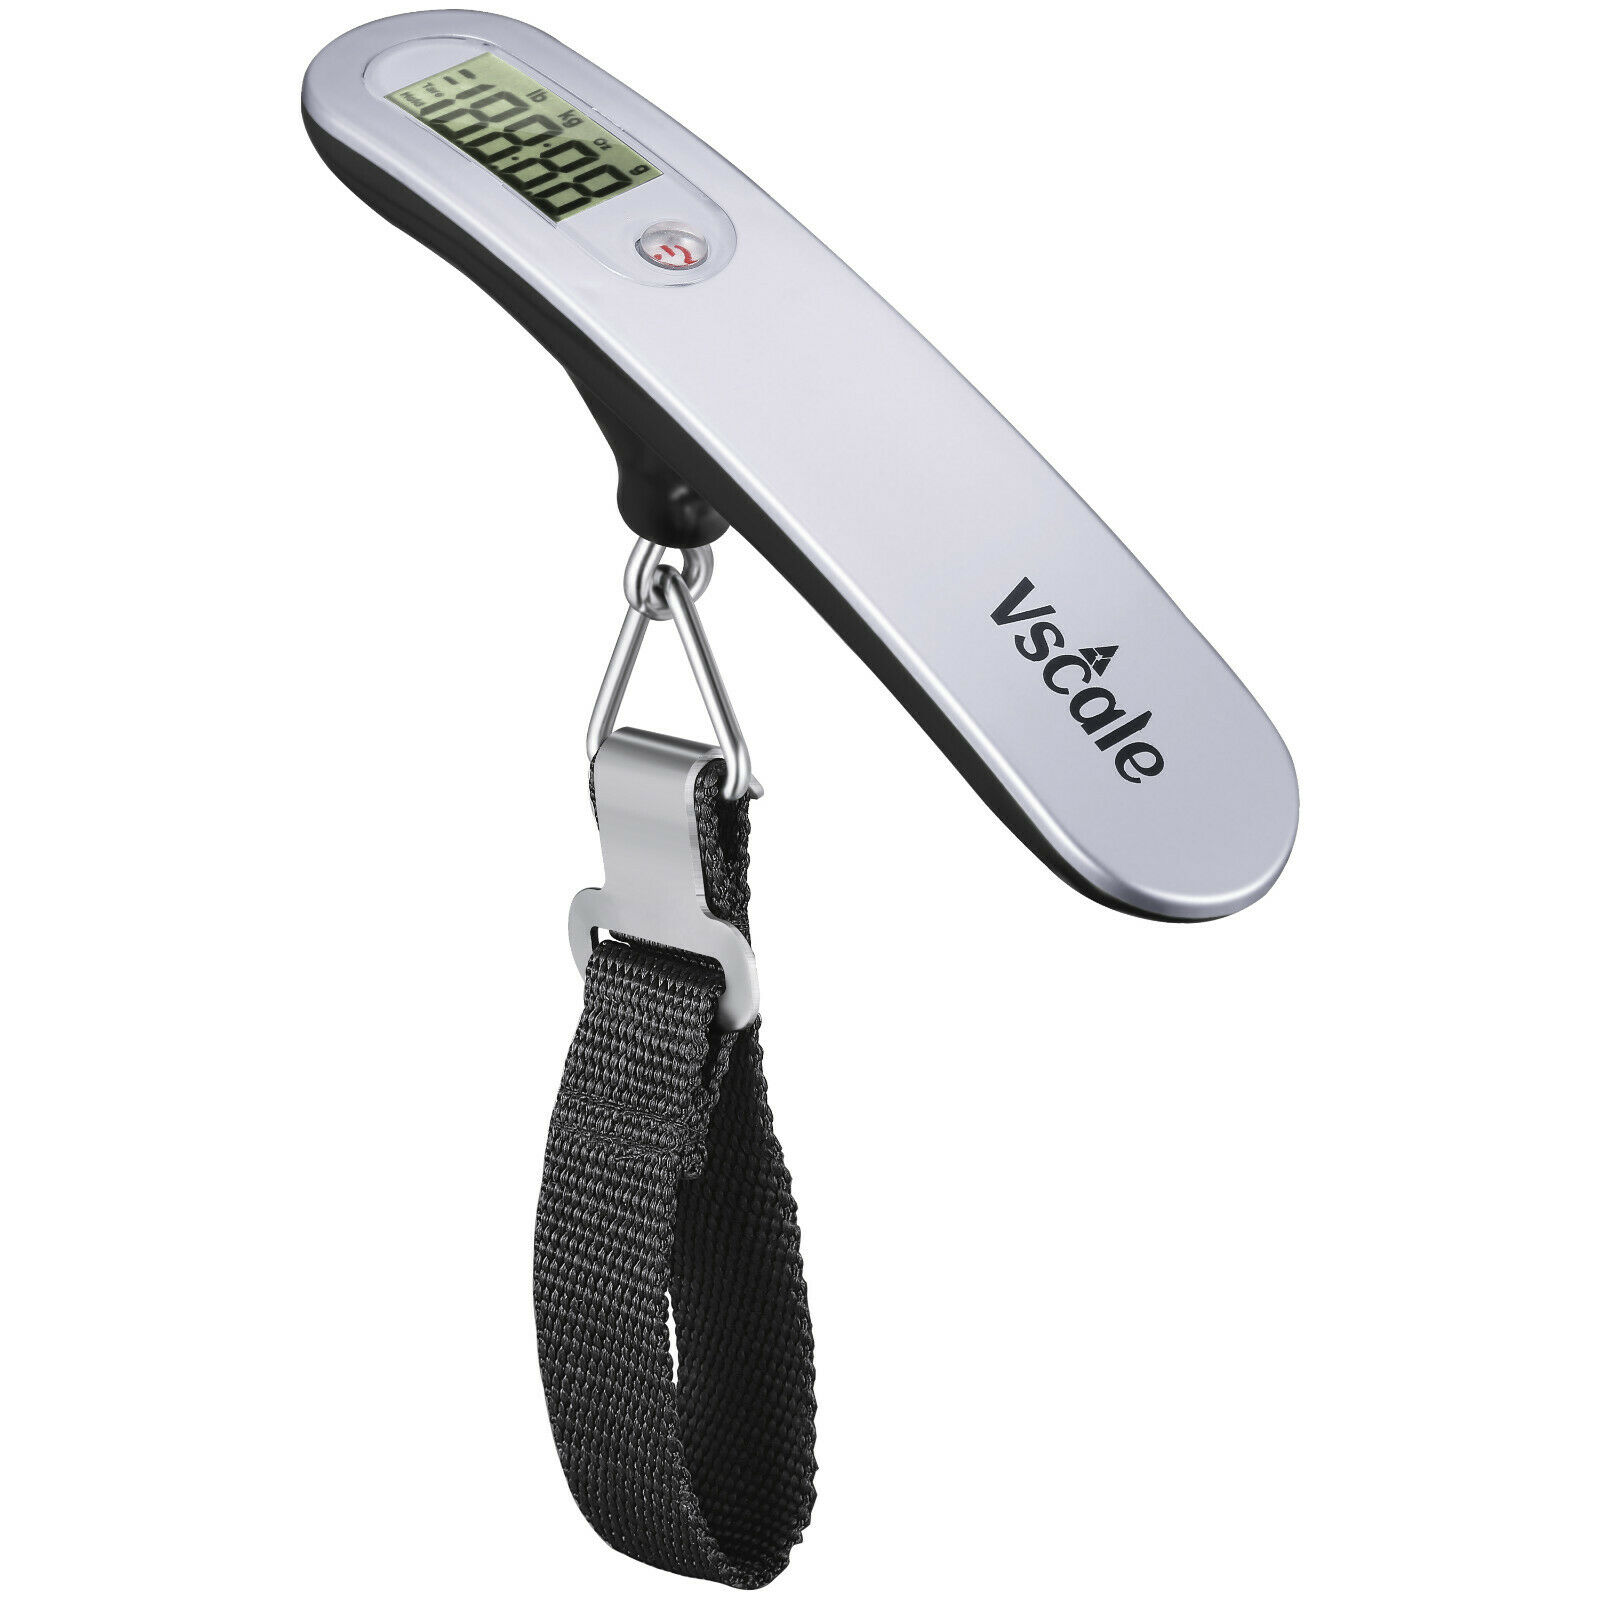 Portable Travel 110lb / 50kg LCD Digital Hanging Luggage Scale Electronic Weight Luggage Accessories